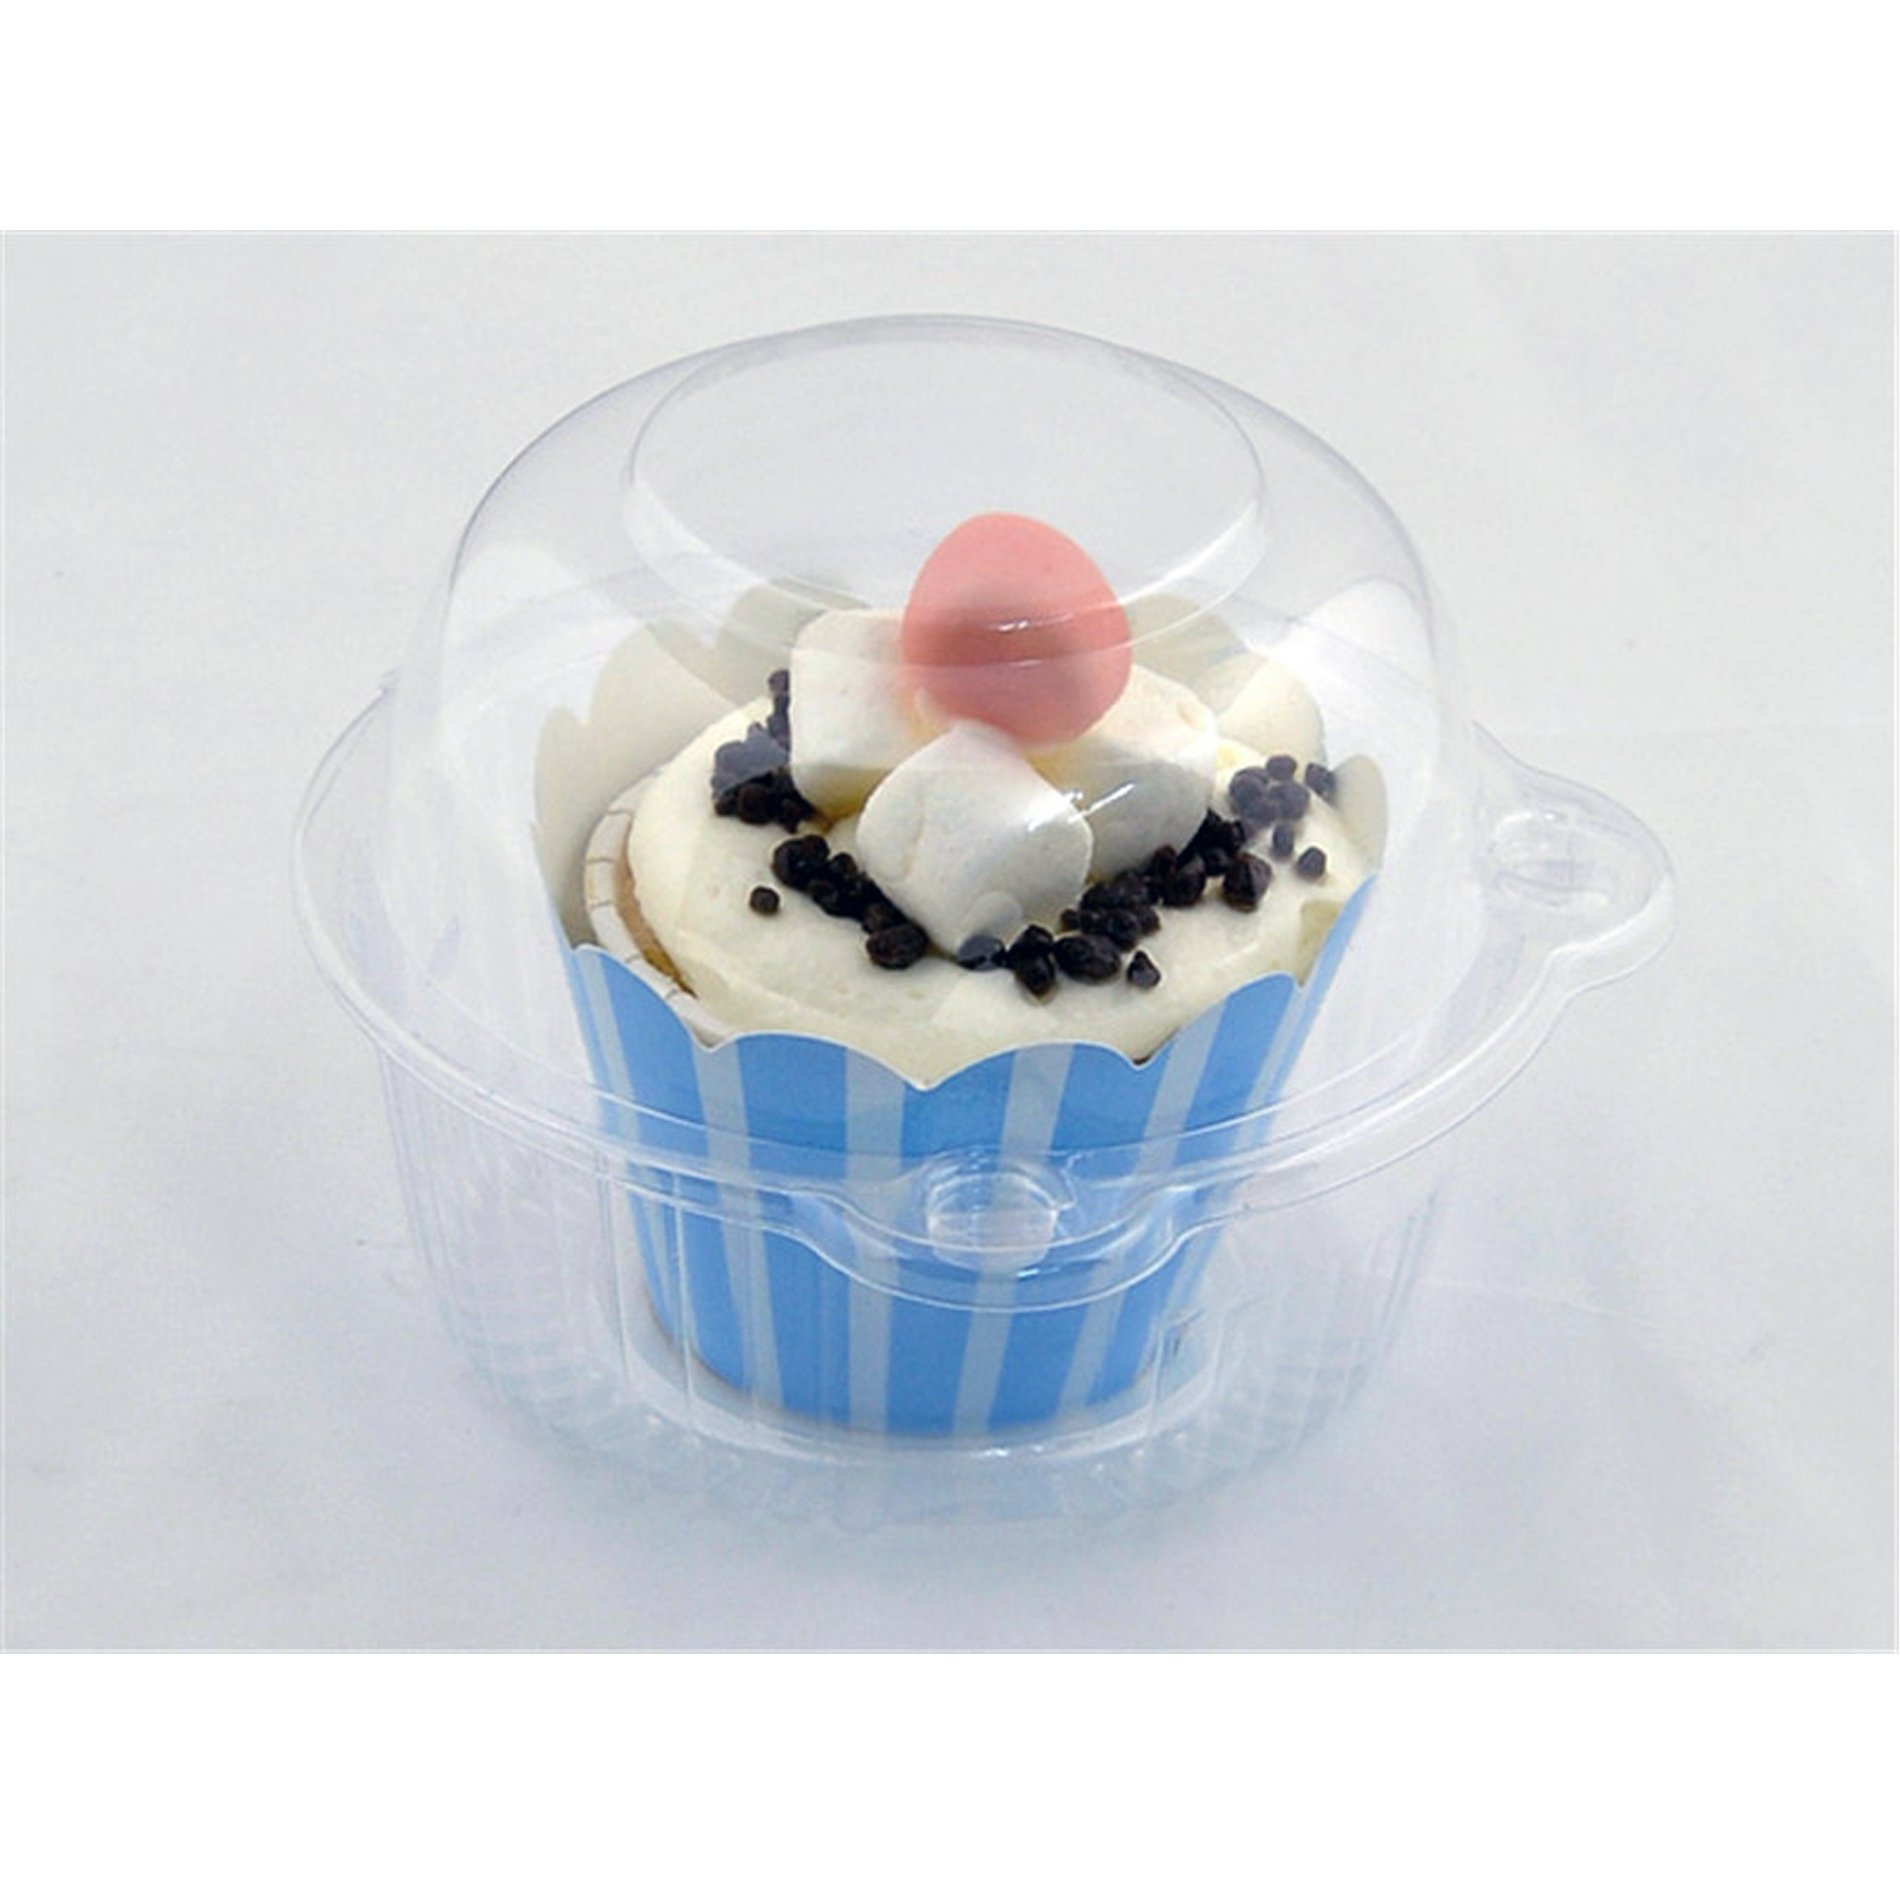 100pcs Clear Plastic Cupcake Cake Muffin Case Dome Holder Box Container by IDS (Image #2)